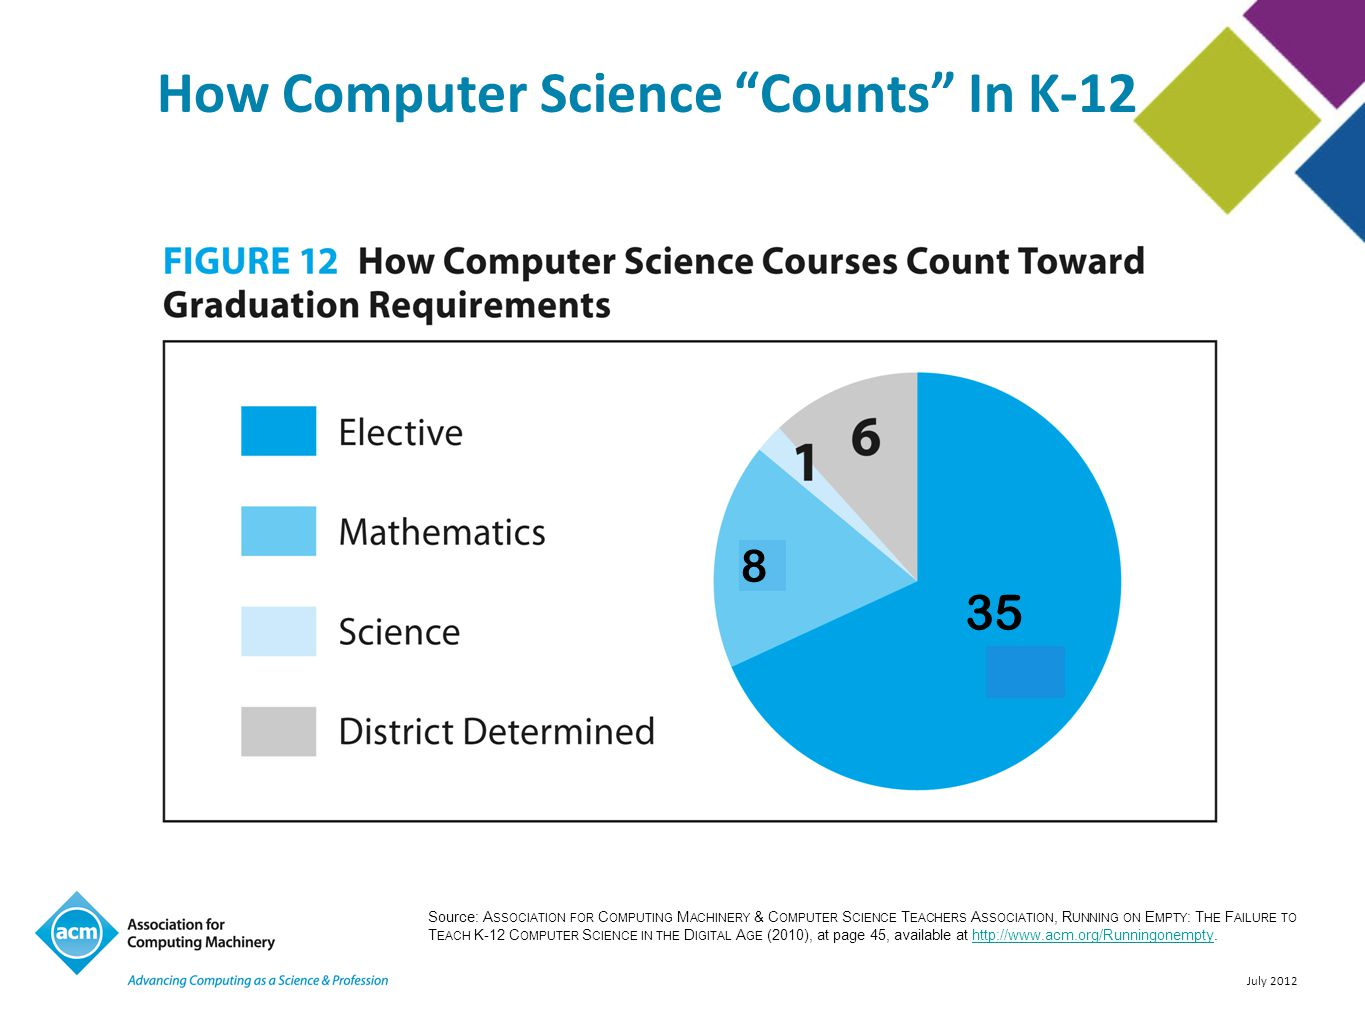 July 2012 How Computer Science Counts In K-12 Source: A SSOCIATION FOR C OMPUTING M ACHINERY & C OMPUTER S CIENCE T EACHERS A SSOCIATION, R UNNING ON E MPTY : T HE F AILURE TO T EACH K-12 C OMPUTER S CIENCE IN THE D IGITAL A GE (2010), at page 45, available at http://www.acm.org/Runningonempty.http://www.acm.org/Runningonempty 8 35